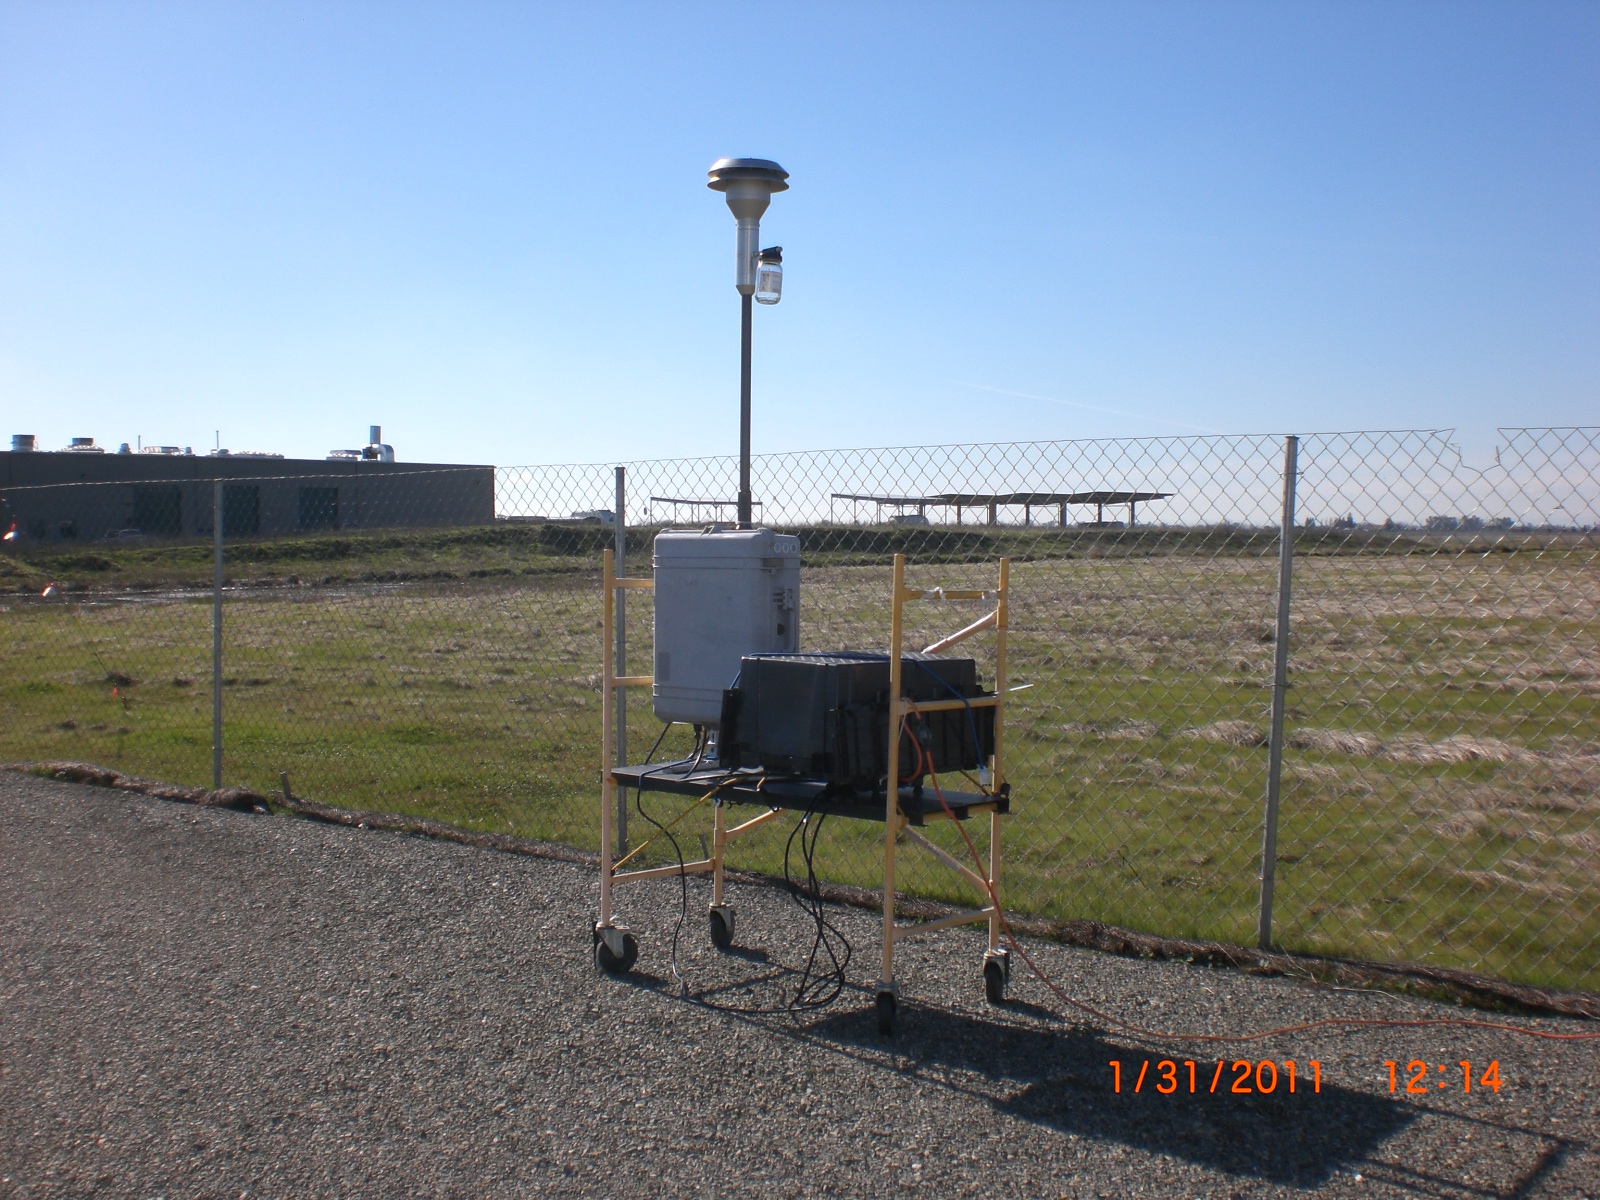 Image: a RDI sampler and stack inlet deployed at an airport.